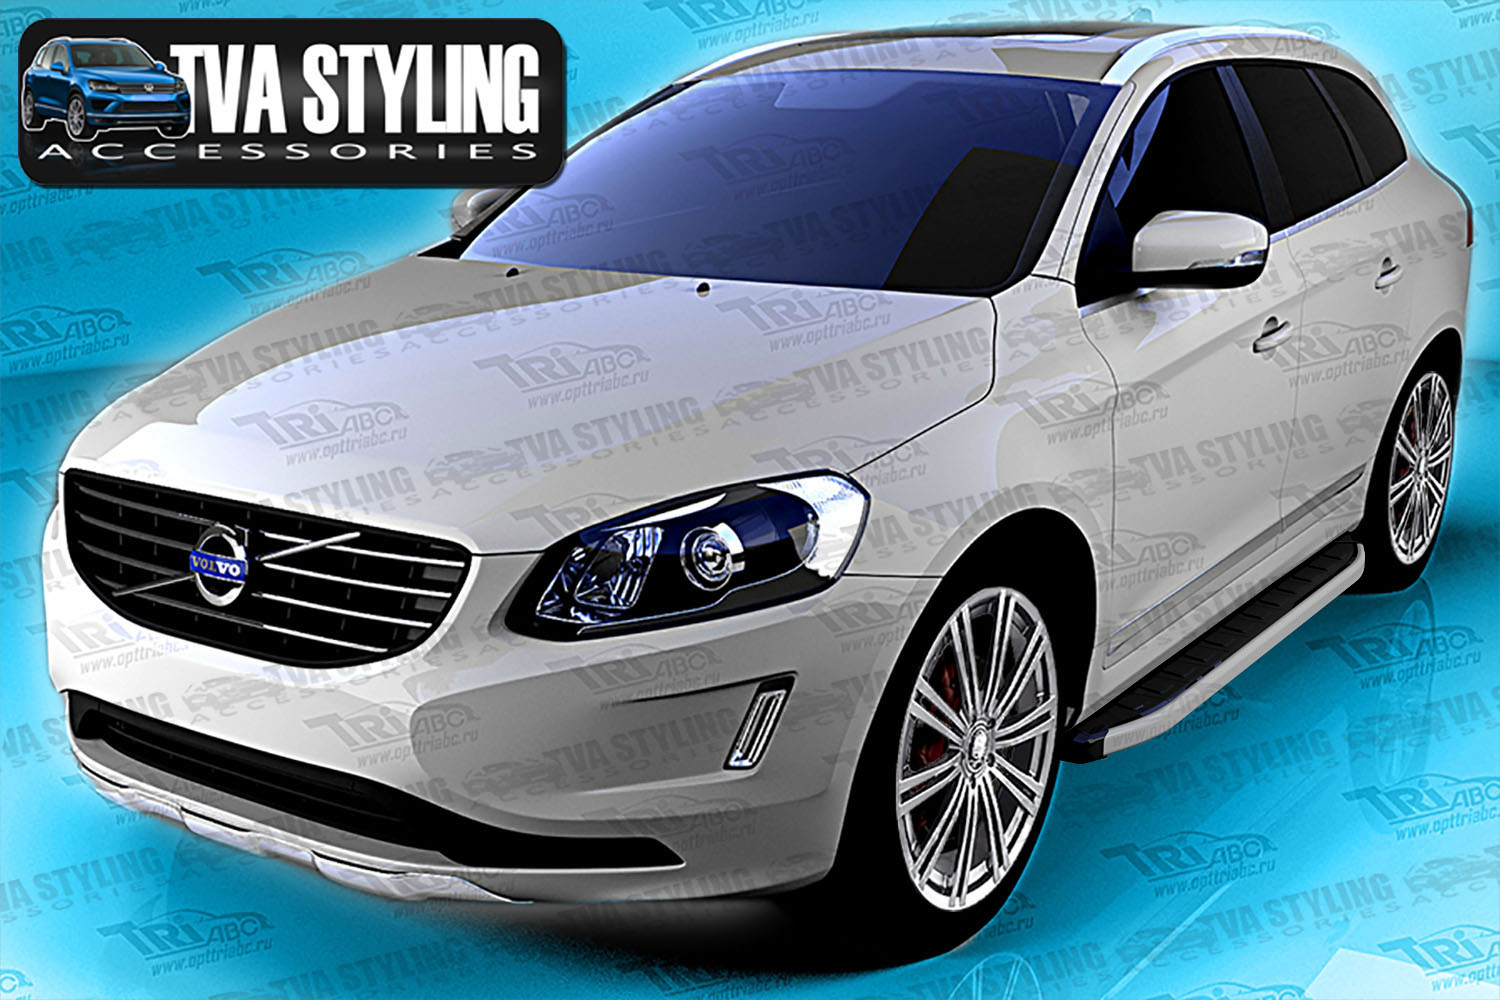 volvo xc60 side steps alyans running boards 2008 on buy now at trade 4x4 accessories. Black Bedroom Furniture Sets. Home Design Ideas